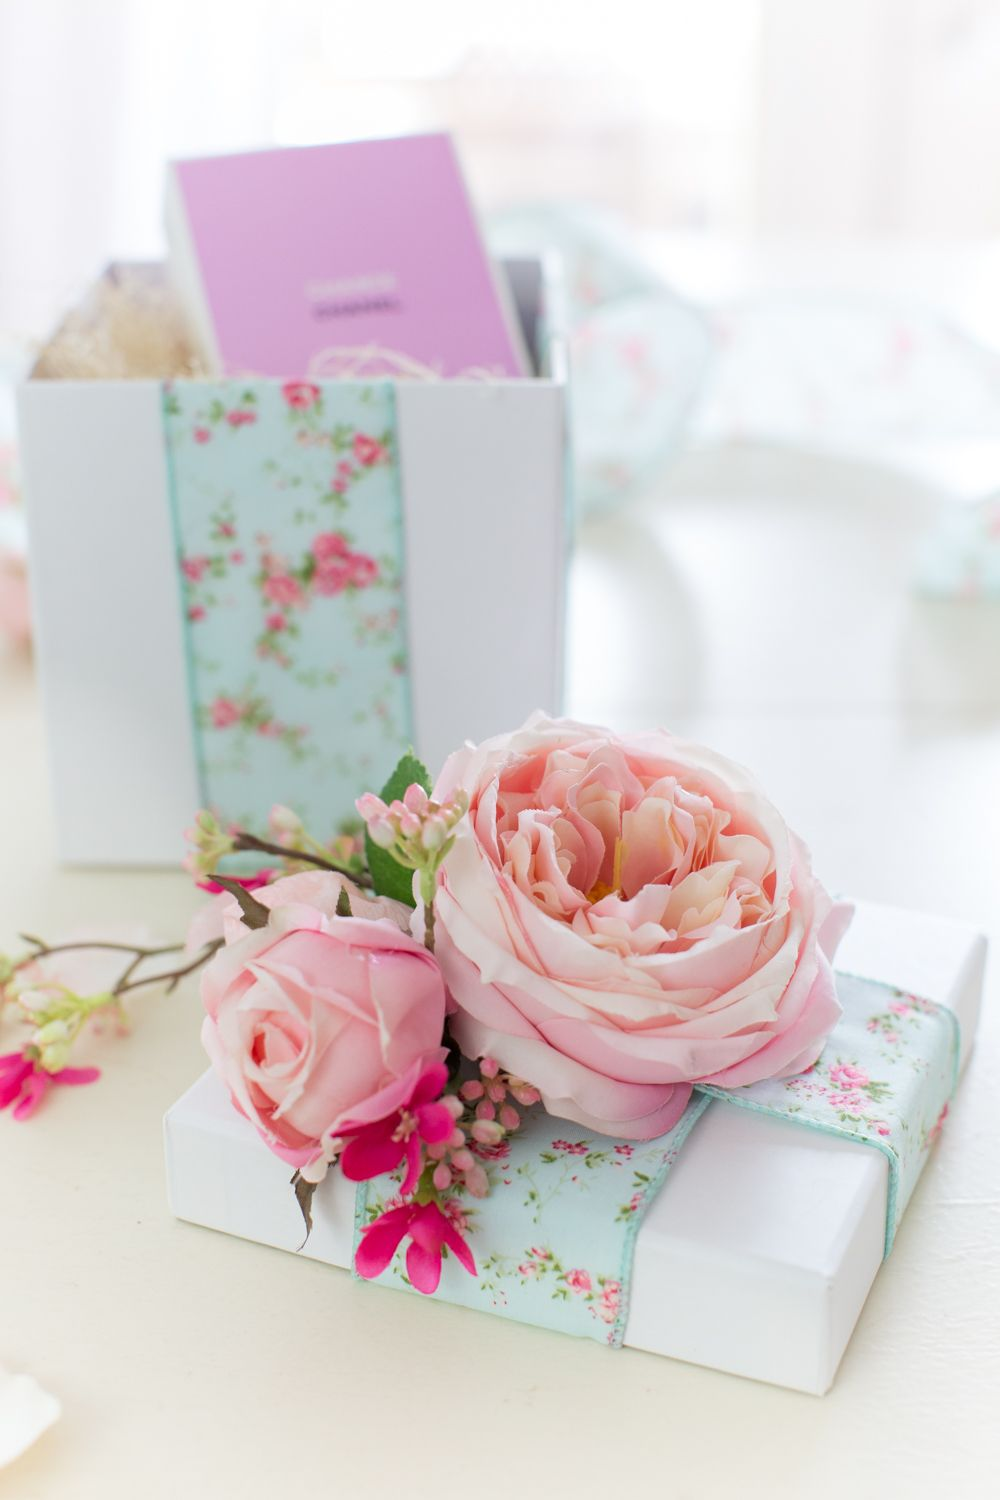 Diy easy floral gift wrapping topper from michaelsmakers